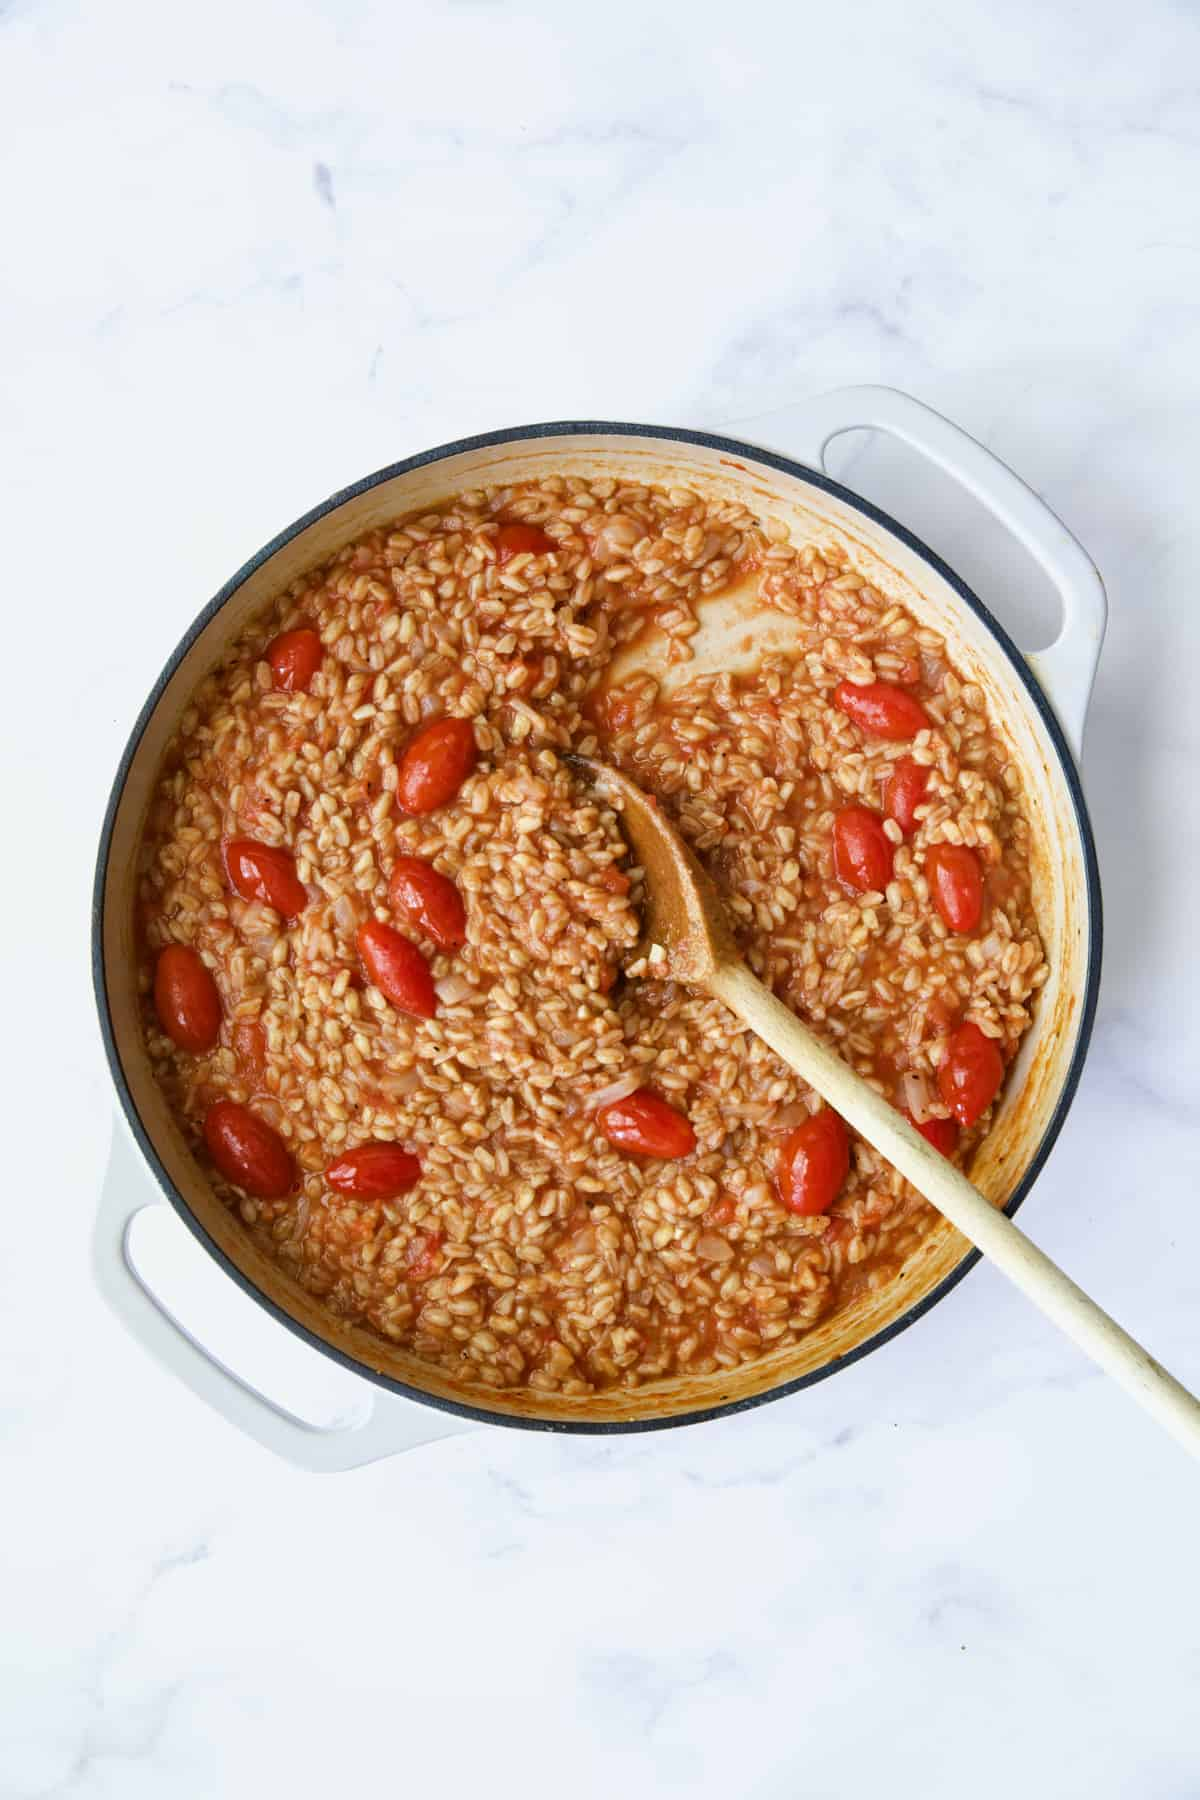 Process photo of farro risotto after crushed tomatoes are added being stirred with wooden spoon.